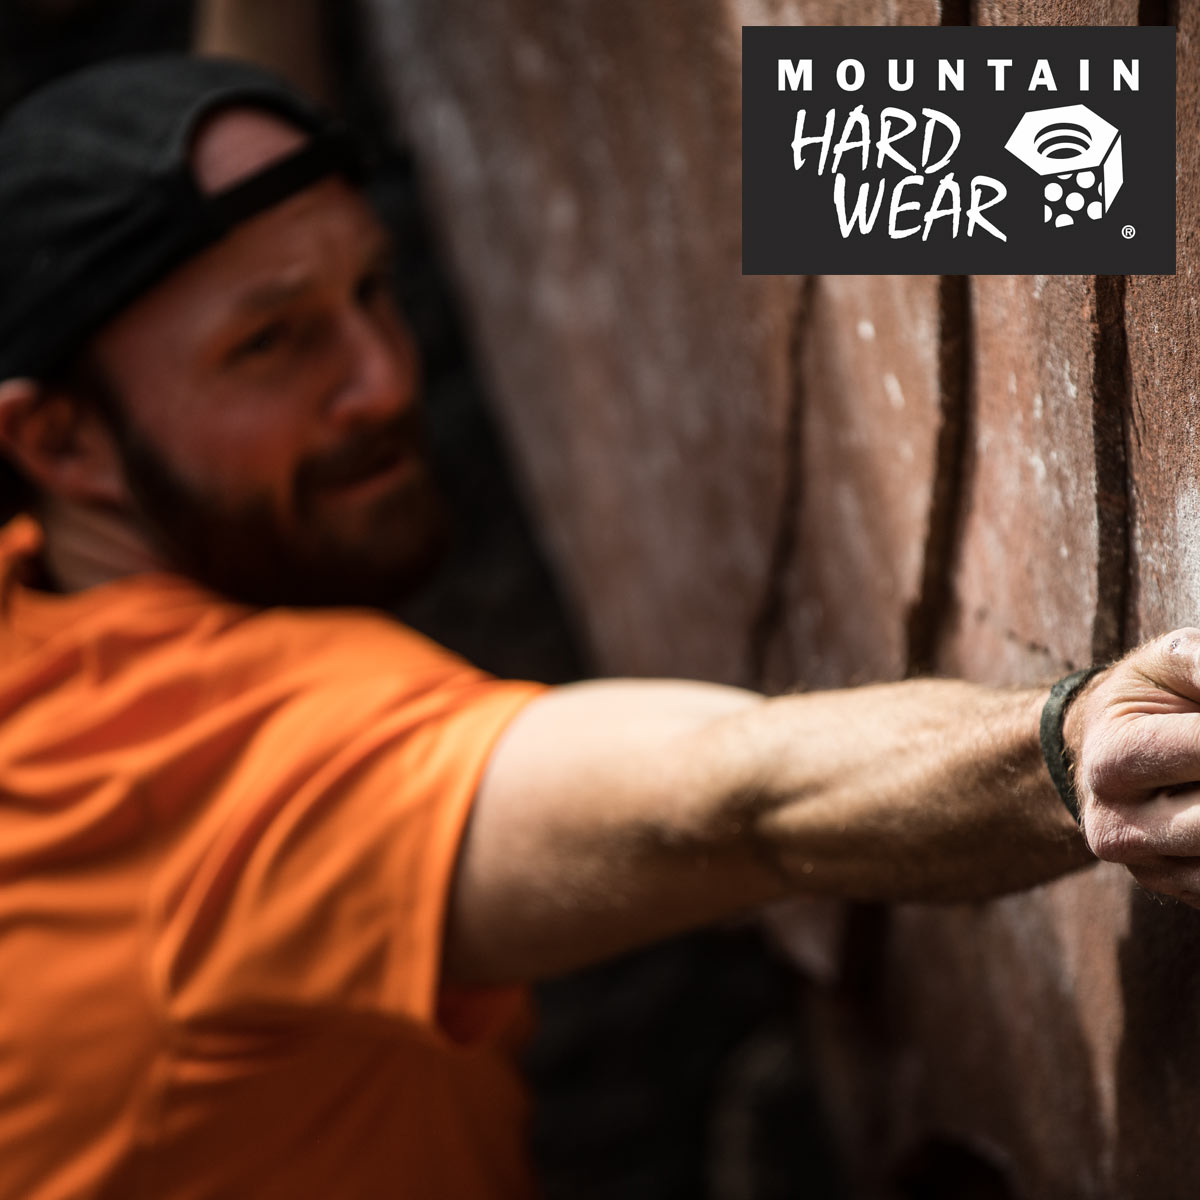 Nashville Mountain Hardwear Dealer